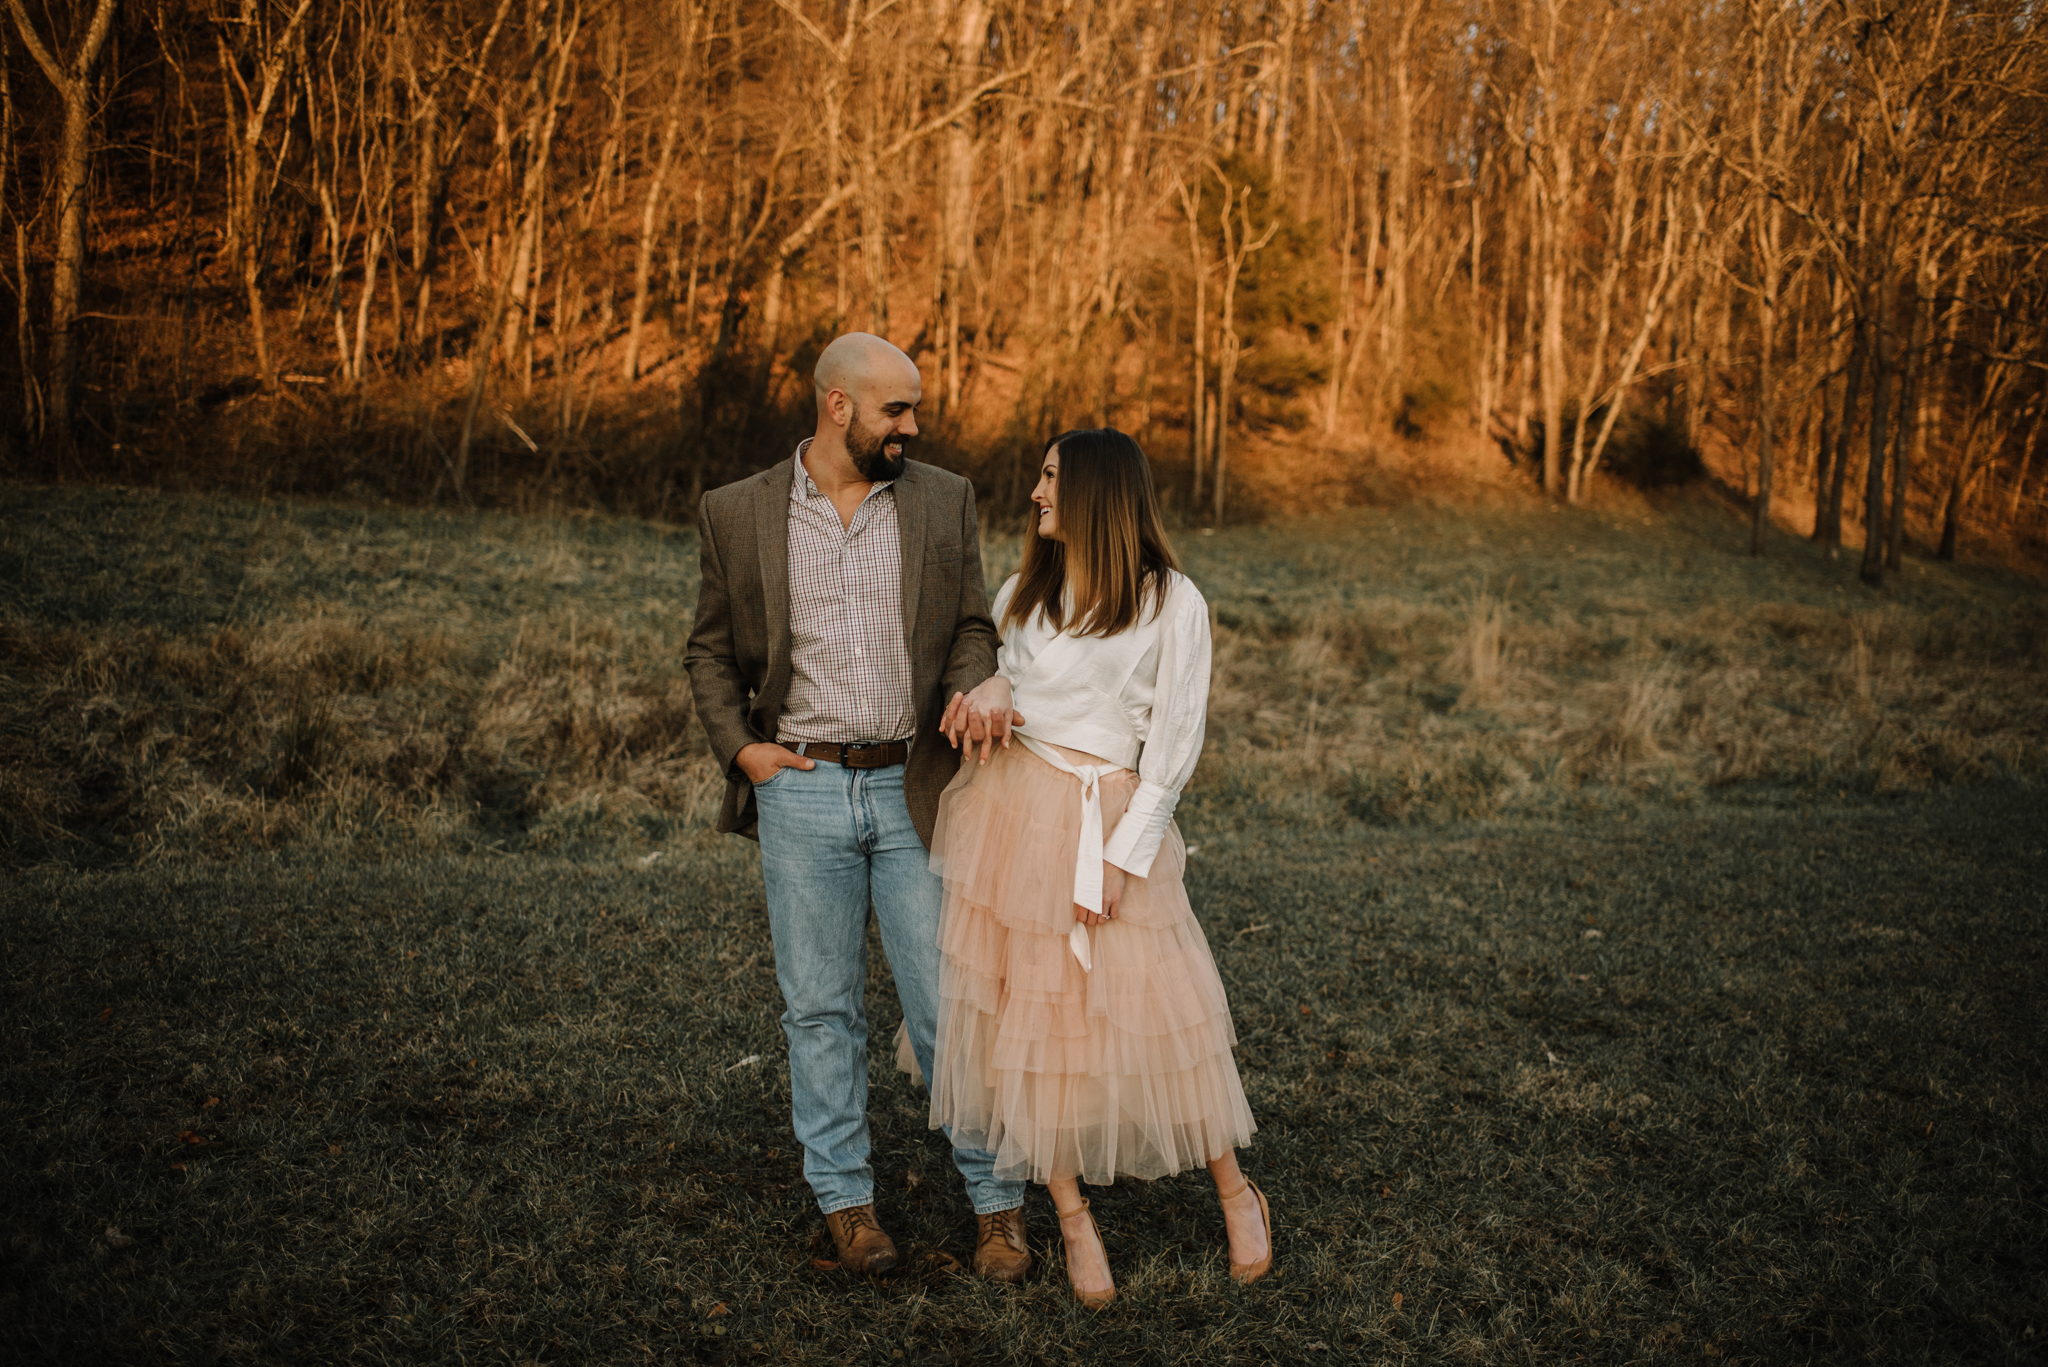 Emily and Hoyle - Shenandoah Valley Engagement Session - Winter Sunset - Downtown Old Movie Theater - Back yard Virginia Farm Wedding_26.JPG